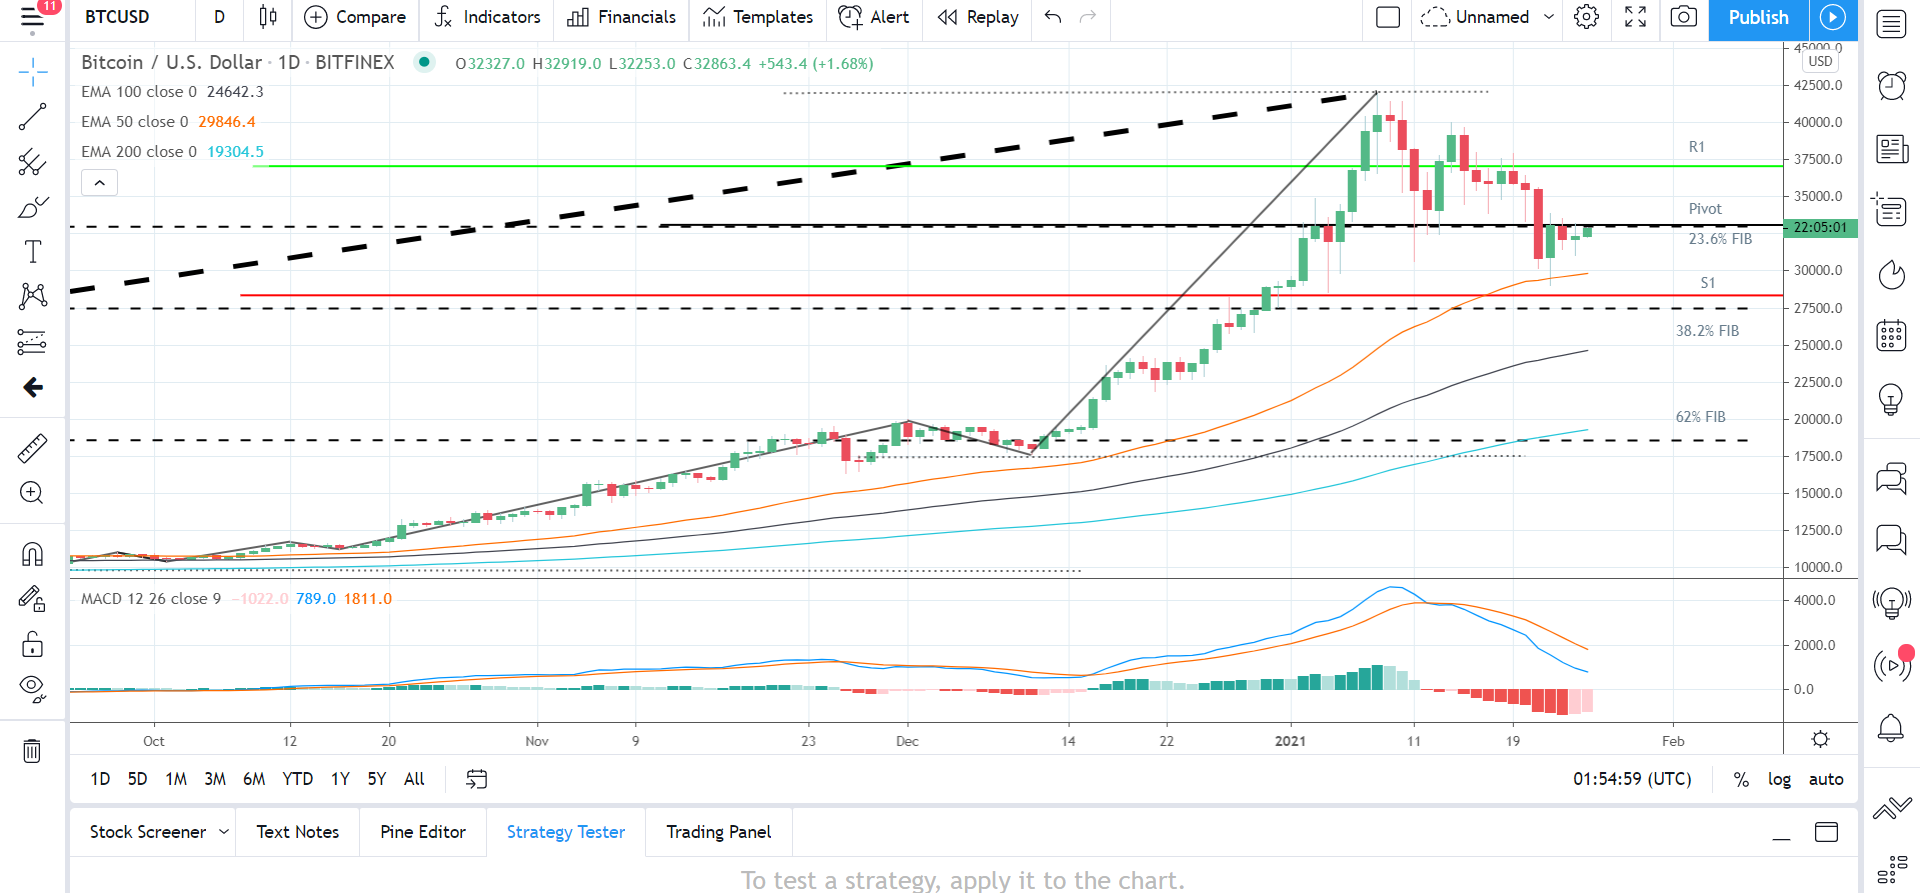 BTCUSD 250121 Daily Chart